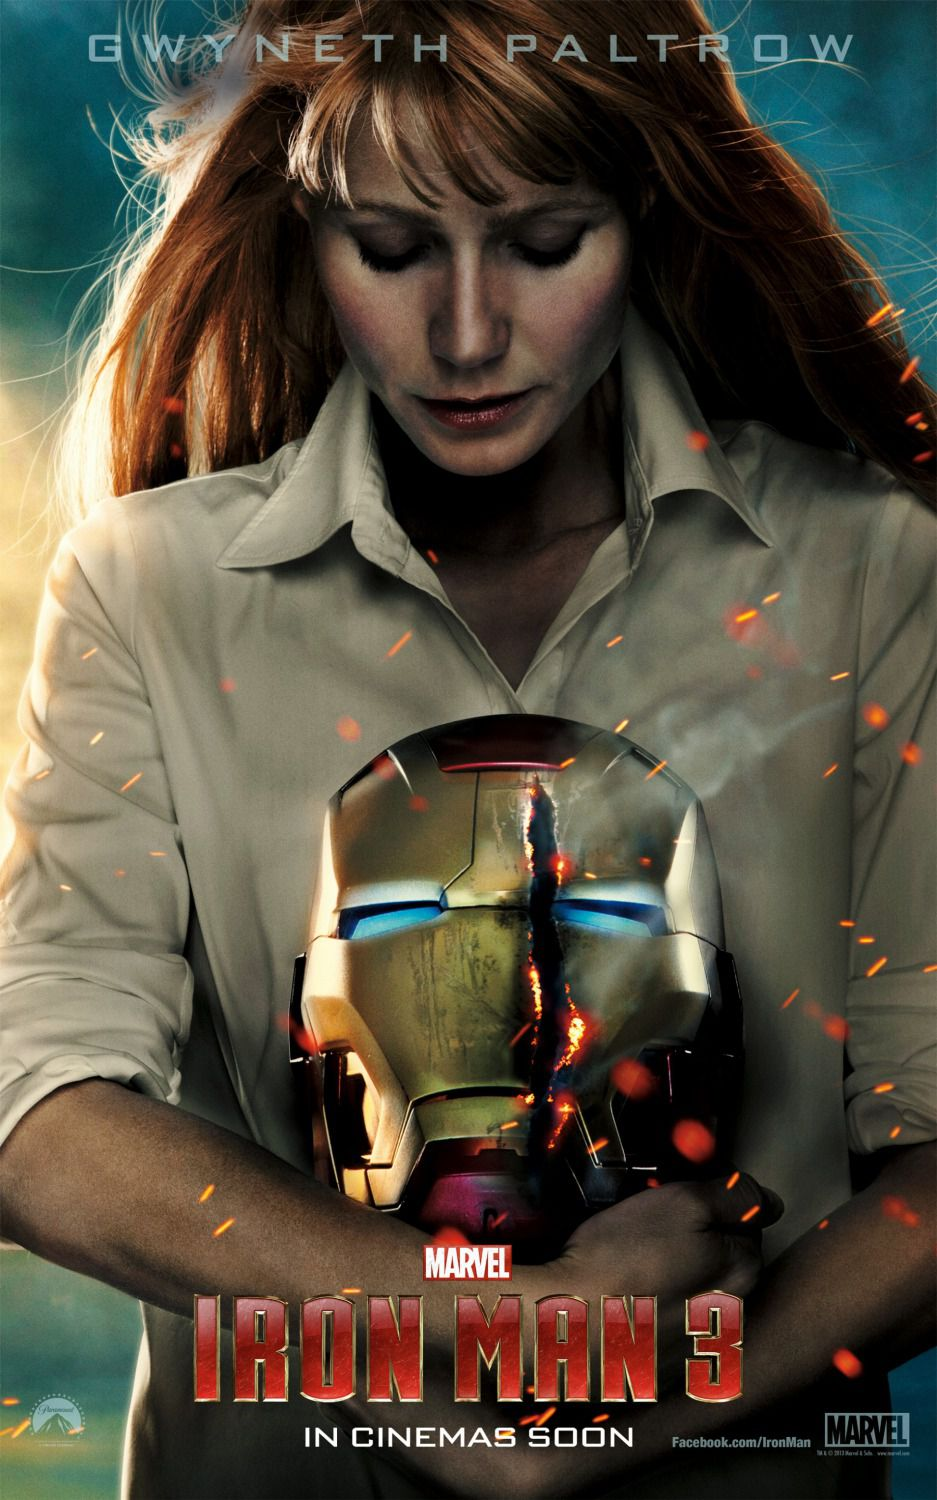 Ironman 3 -  Pepper Pots (Gwyneth Paltrow)